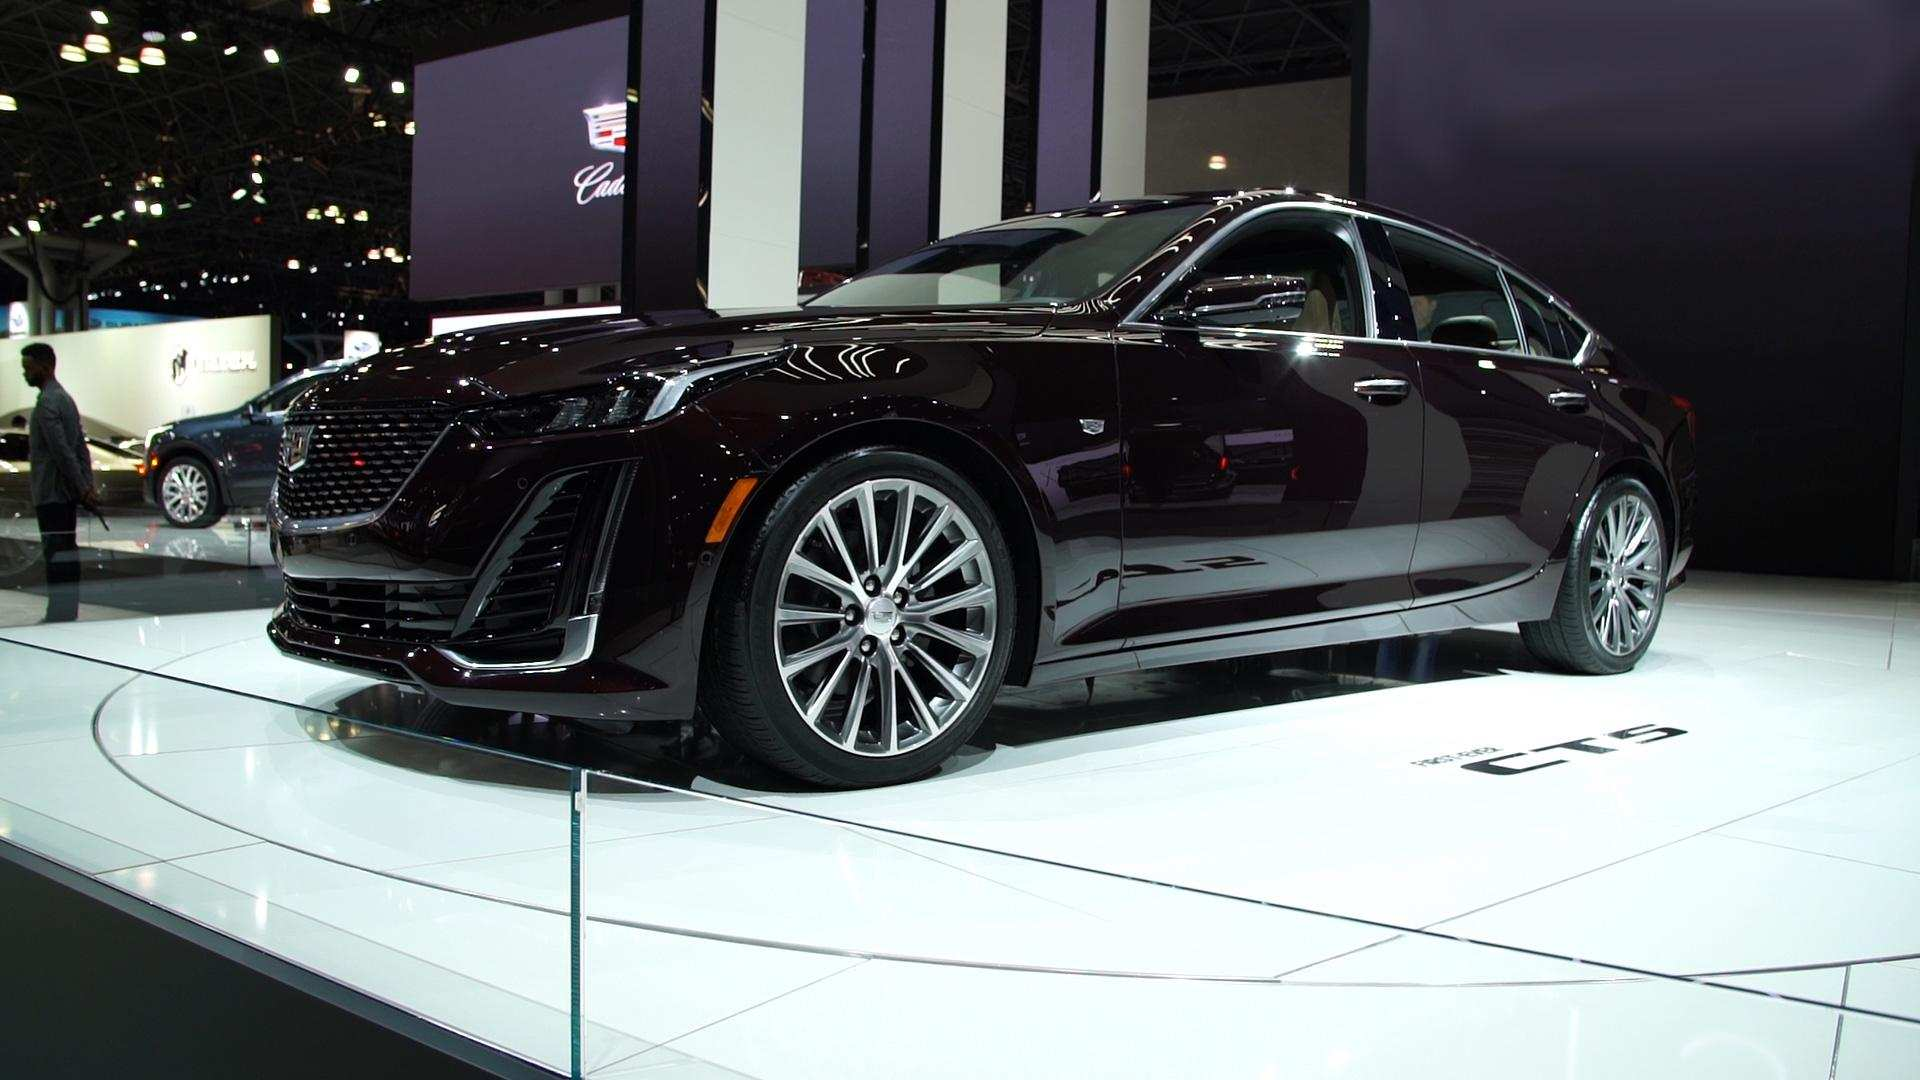 39 All New 2020 Cadillac Build And Price Performance